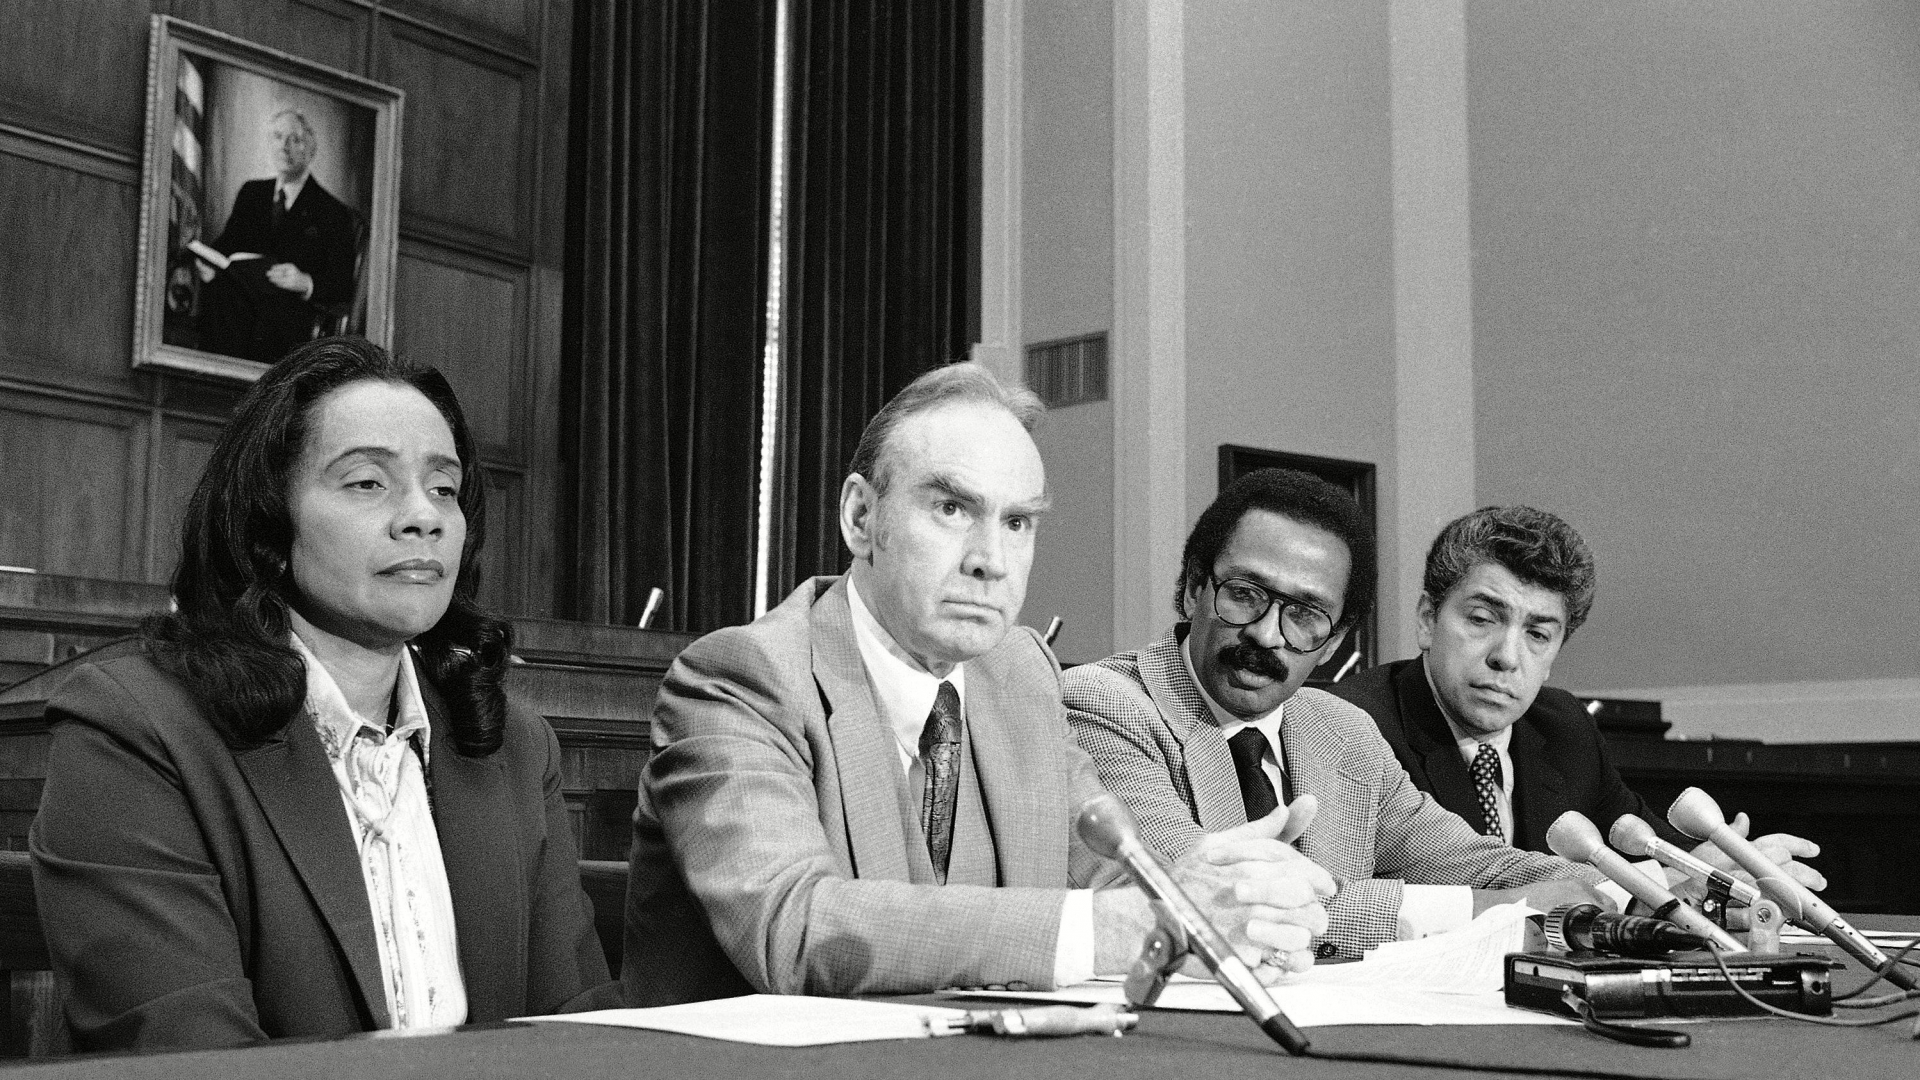 Coretta Scott King, widow of Dr. Martin Luther King, Jr., joining congressmen Jim Wright, John Conyers and Robert Garcia in Washington, in asking support for legislation designating her late husband's birthday as a legal holiday. (Credit: John Duricka/AP/REX/Shutterstock)